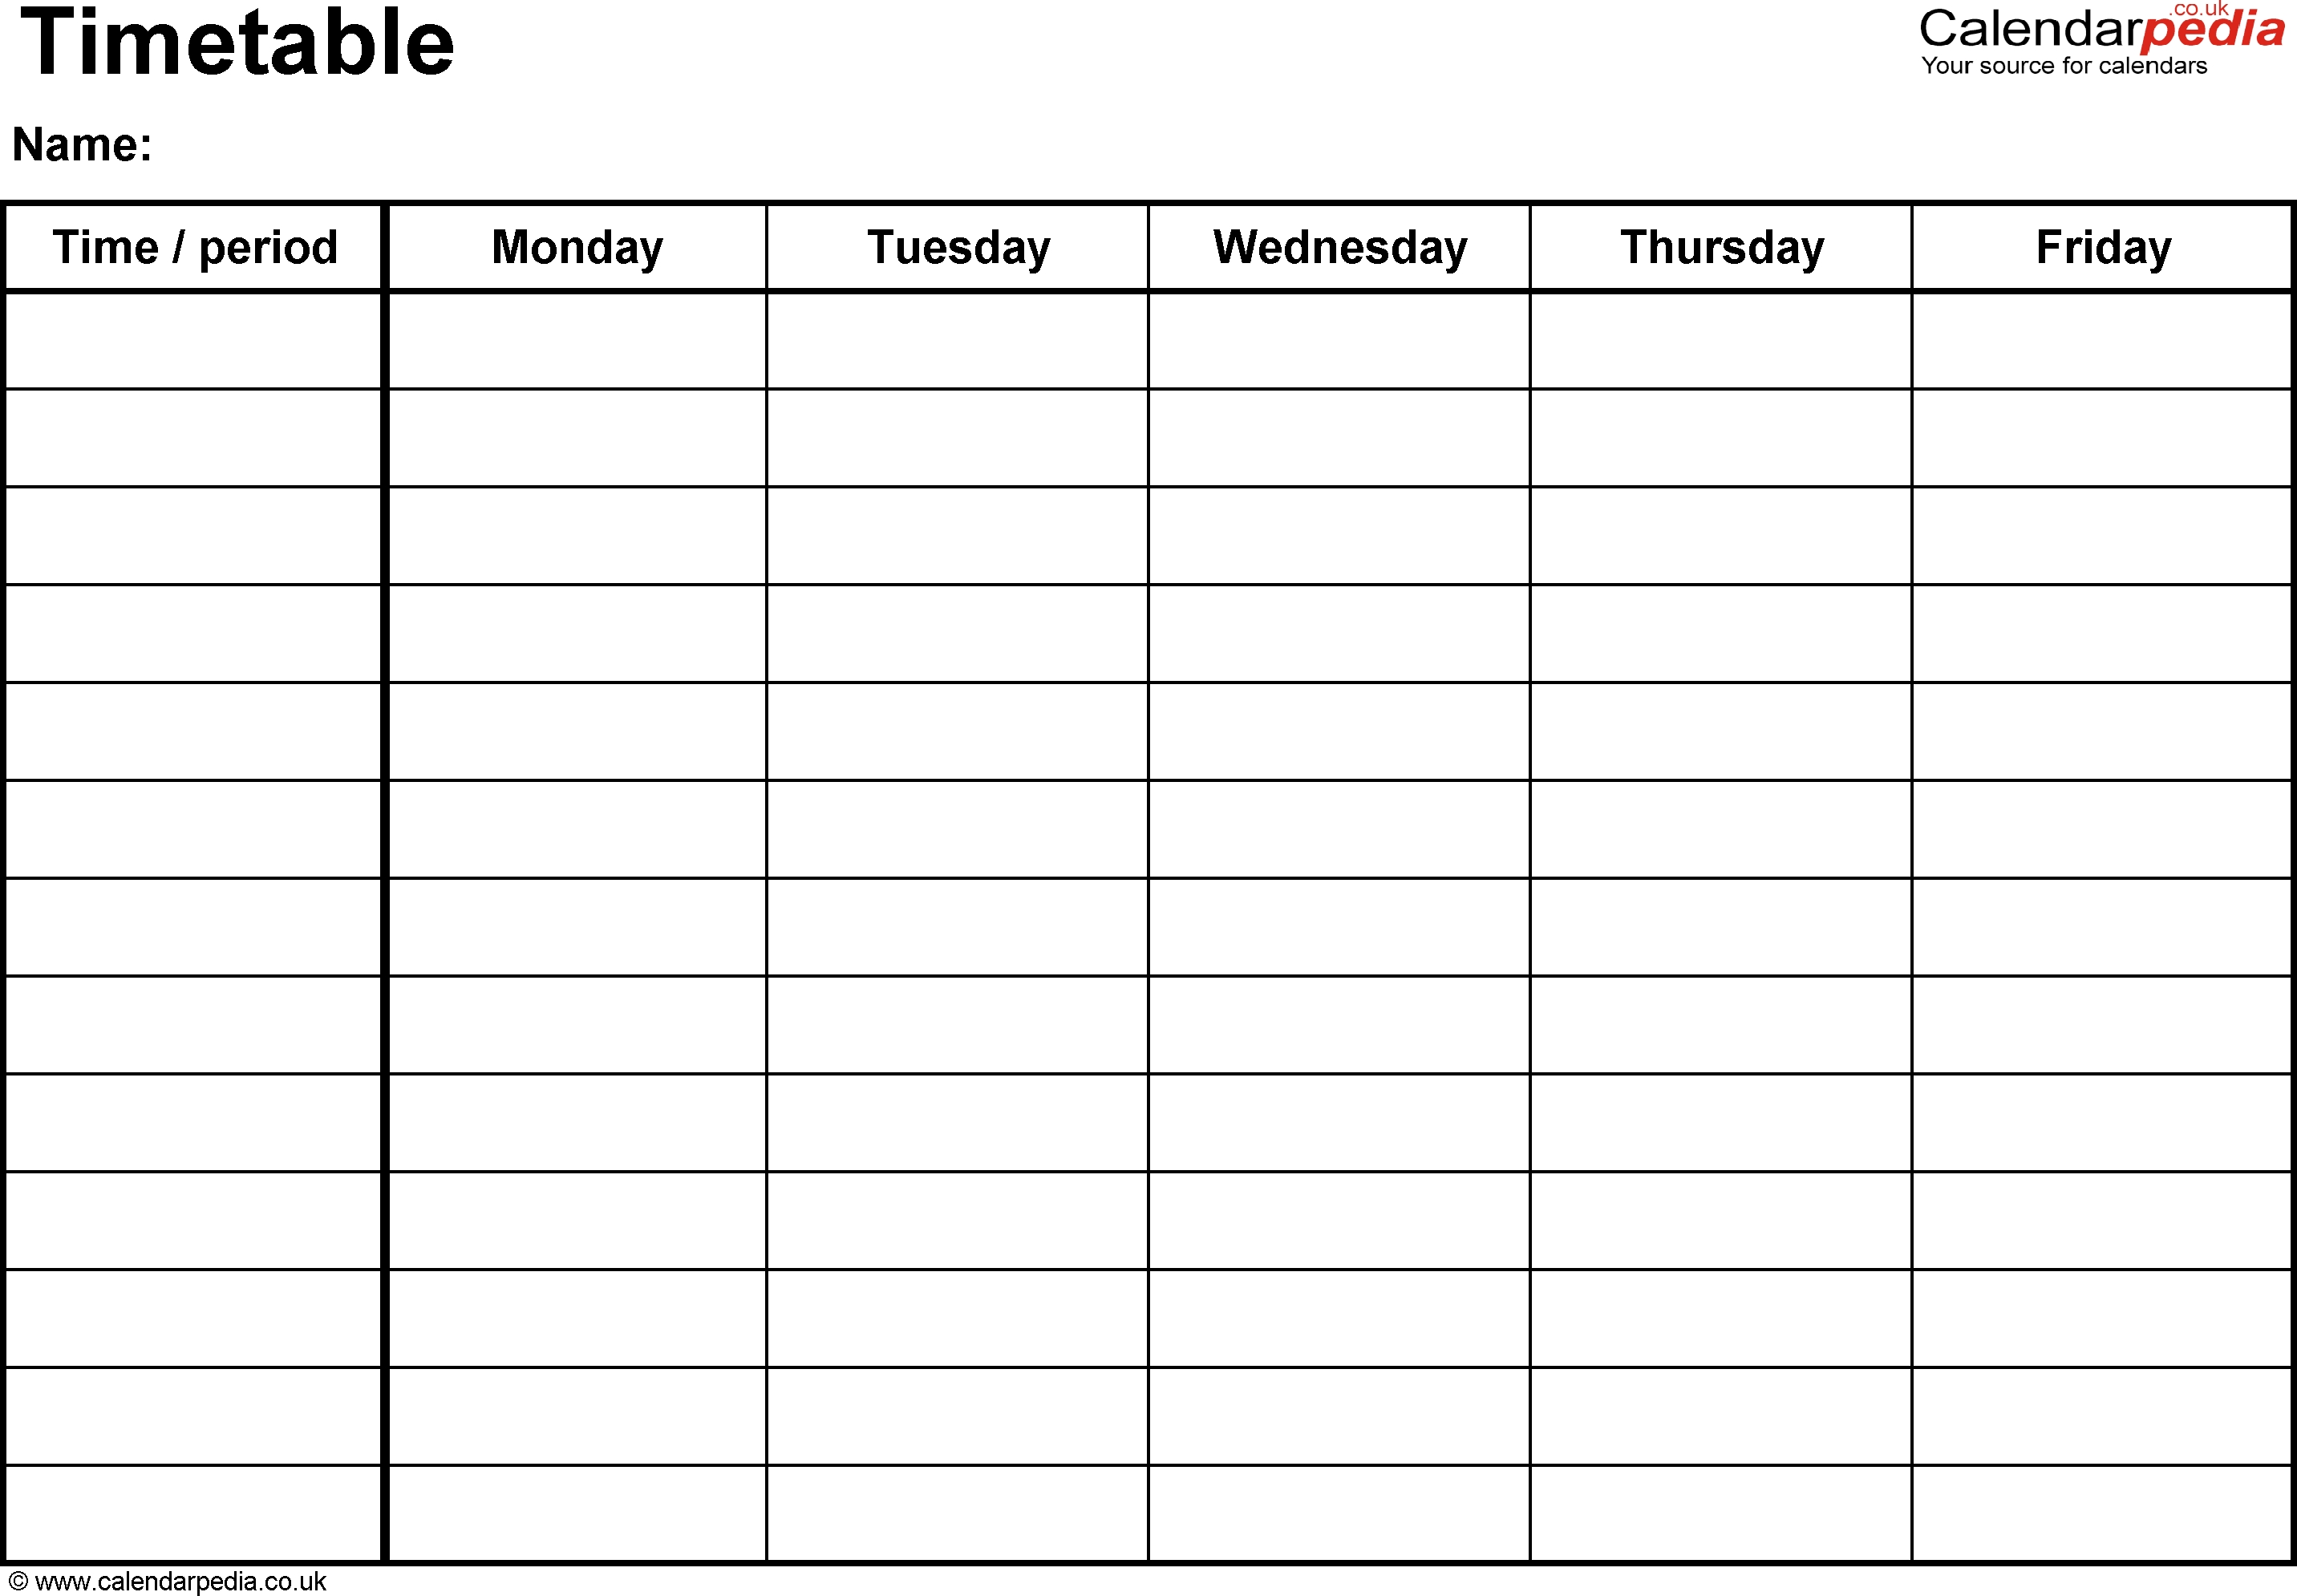 Excel Timetable Template 1: Landscape Format, A4, 1 Page-One Week Monday Through Friday Calendar Template